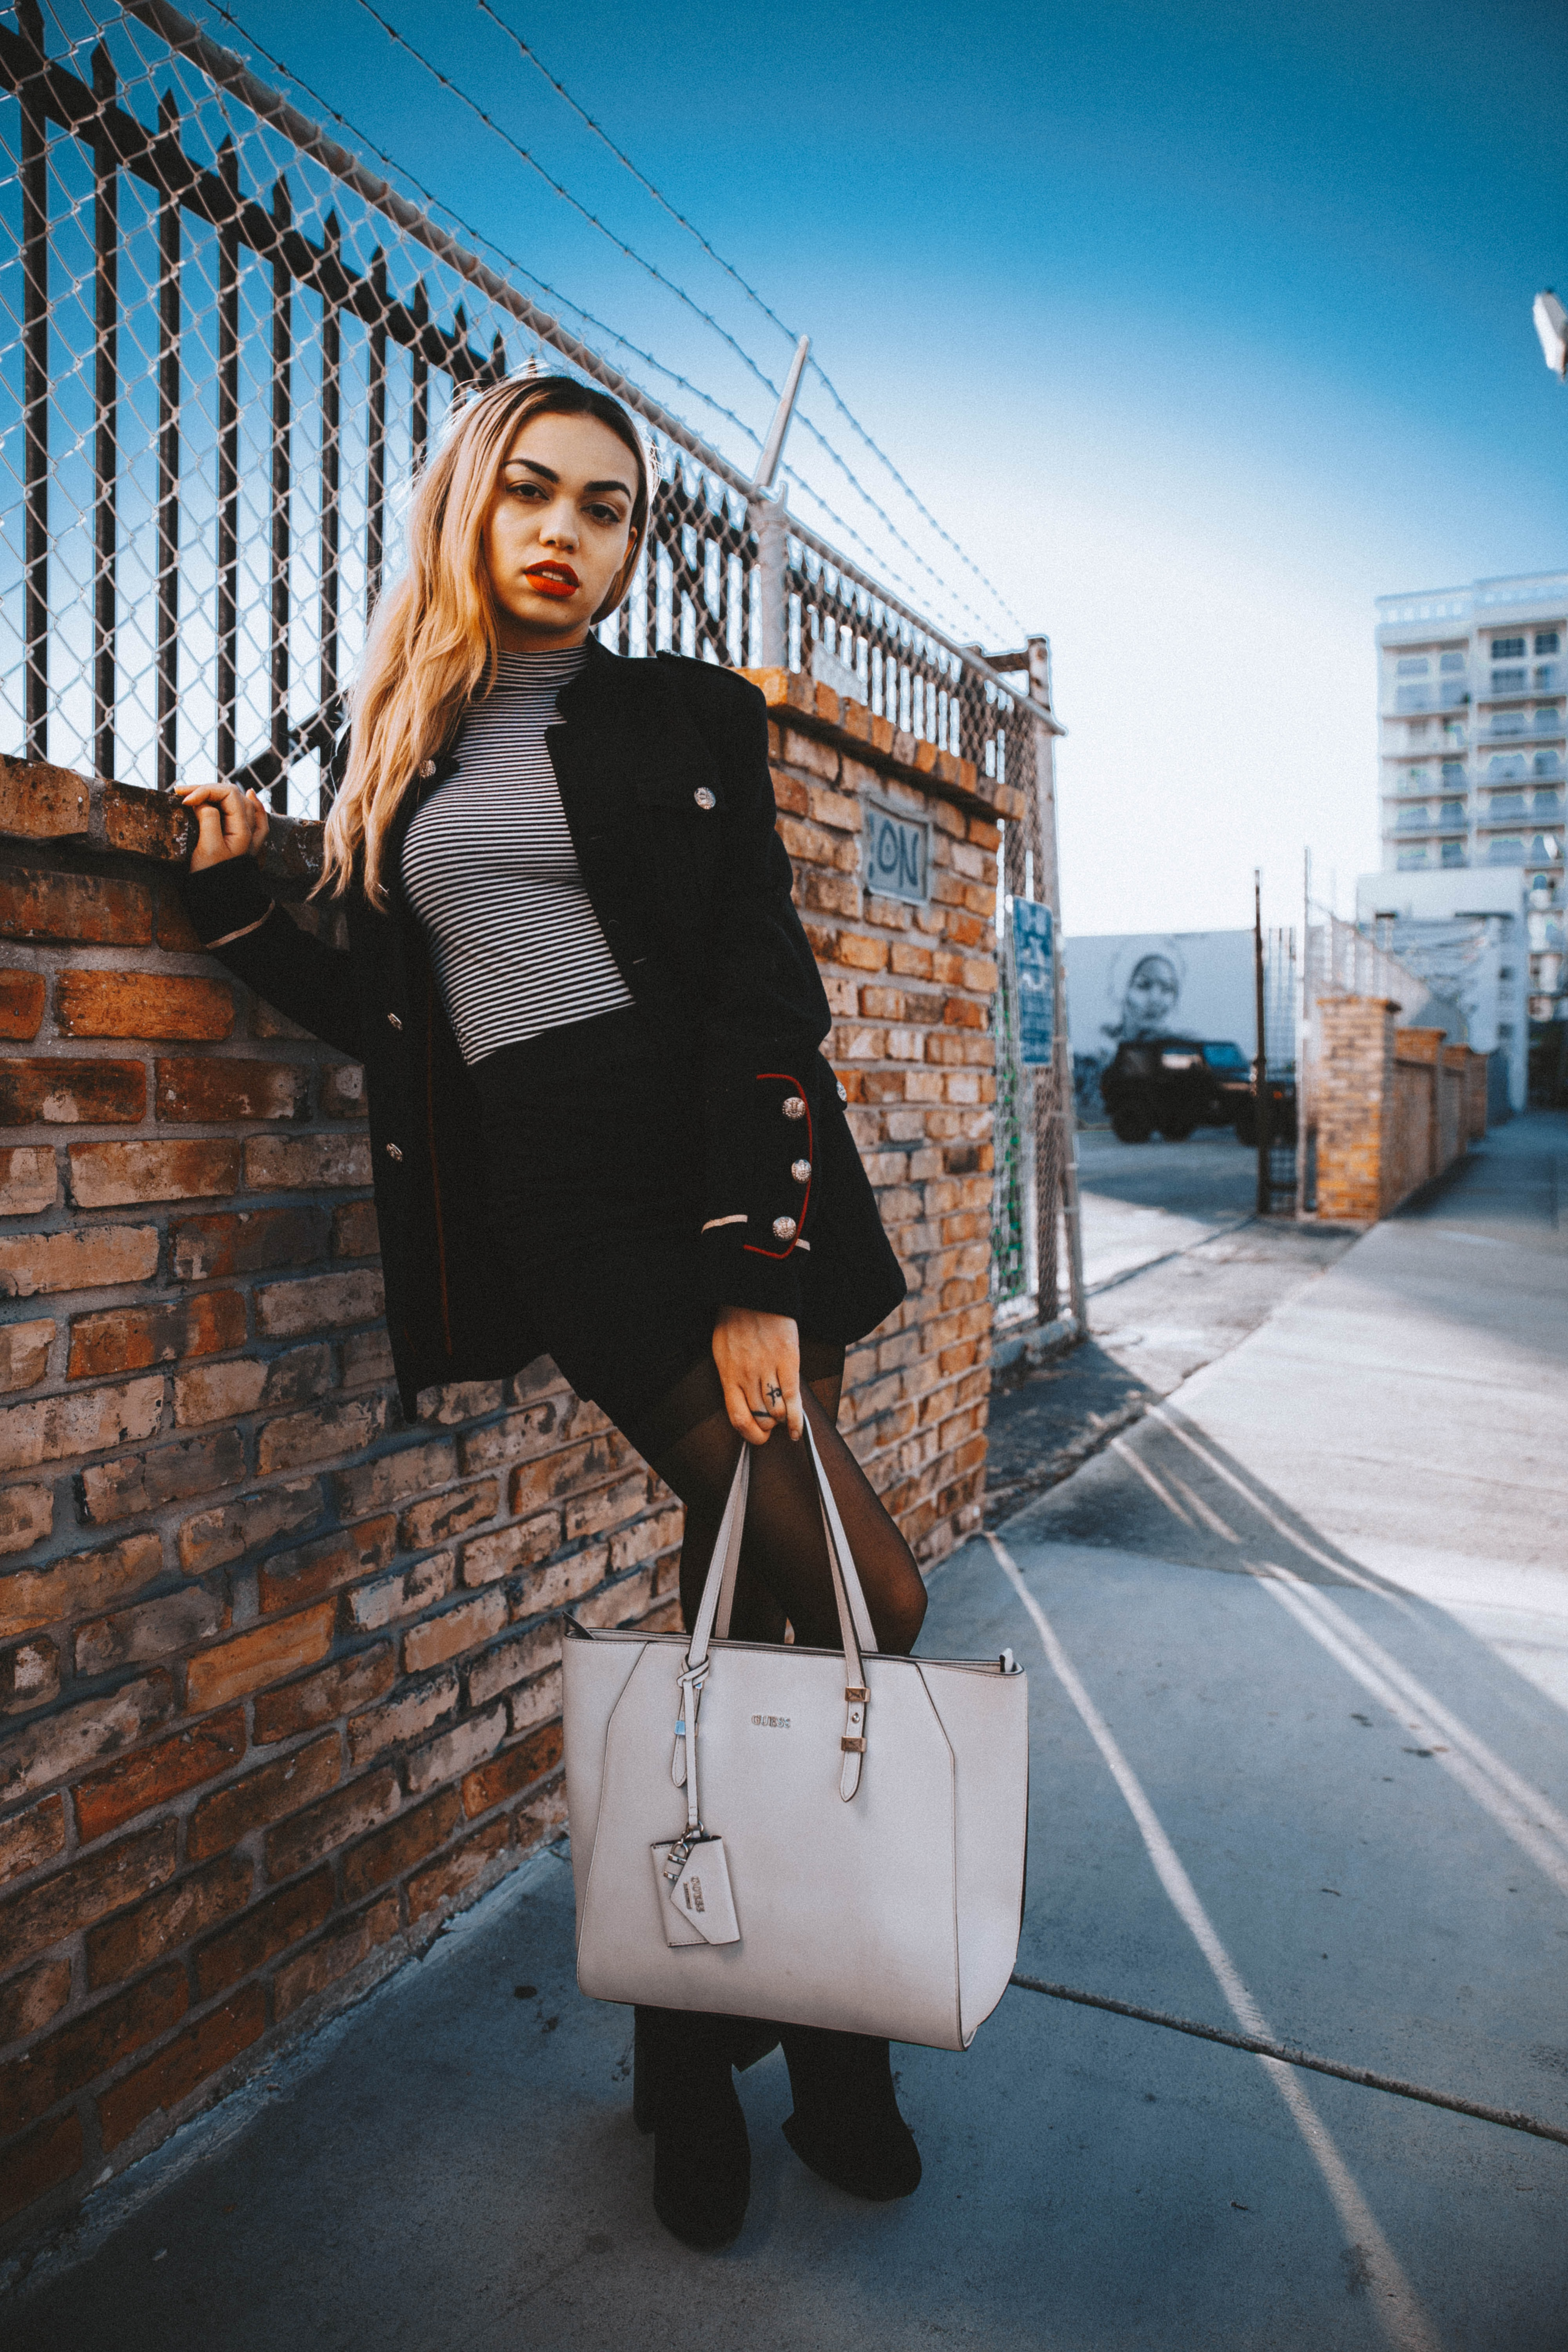 woman wearing black coat standing while holding tote bag besides concrete fence during daytime